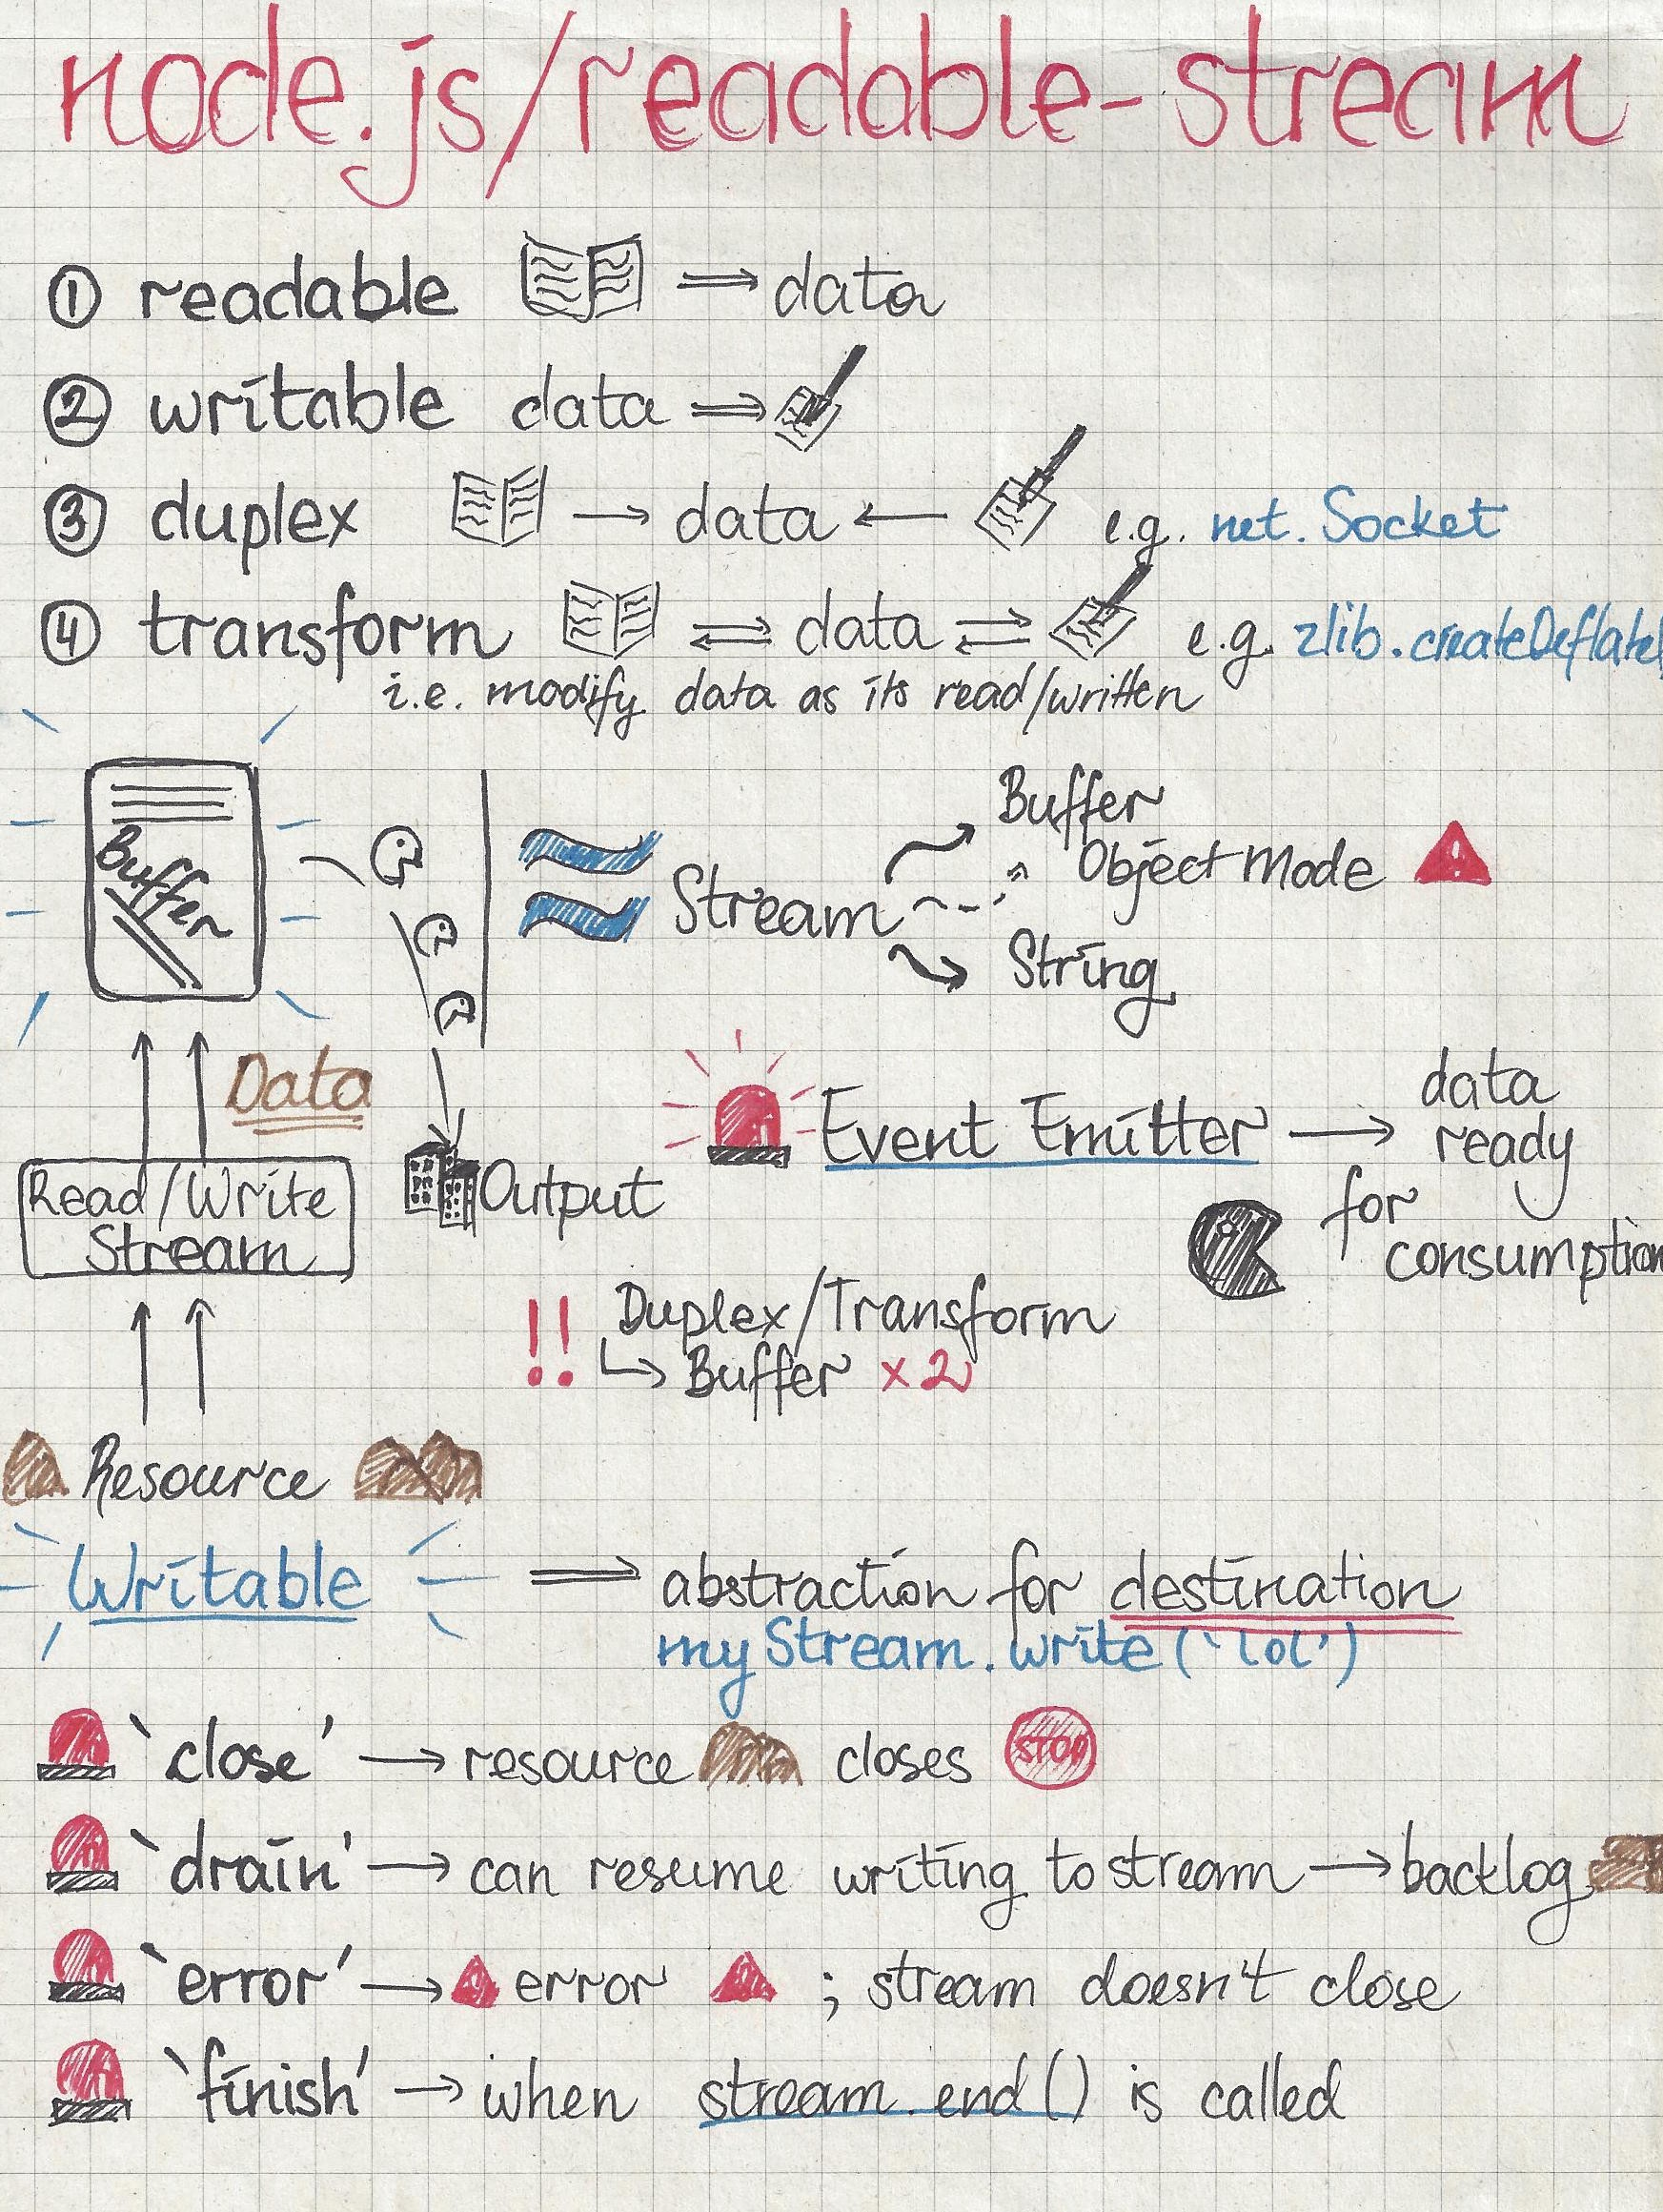 A sketch-note guide to node js streams